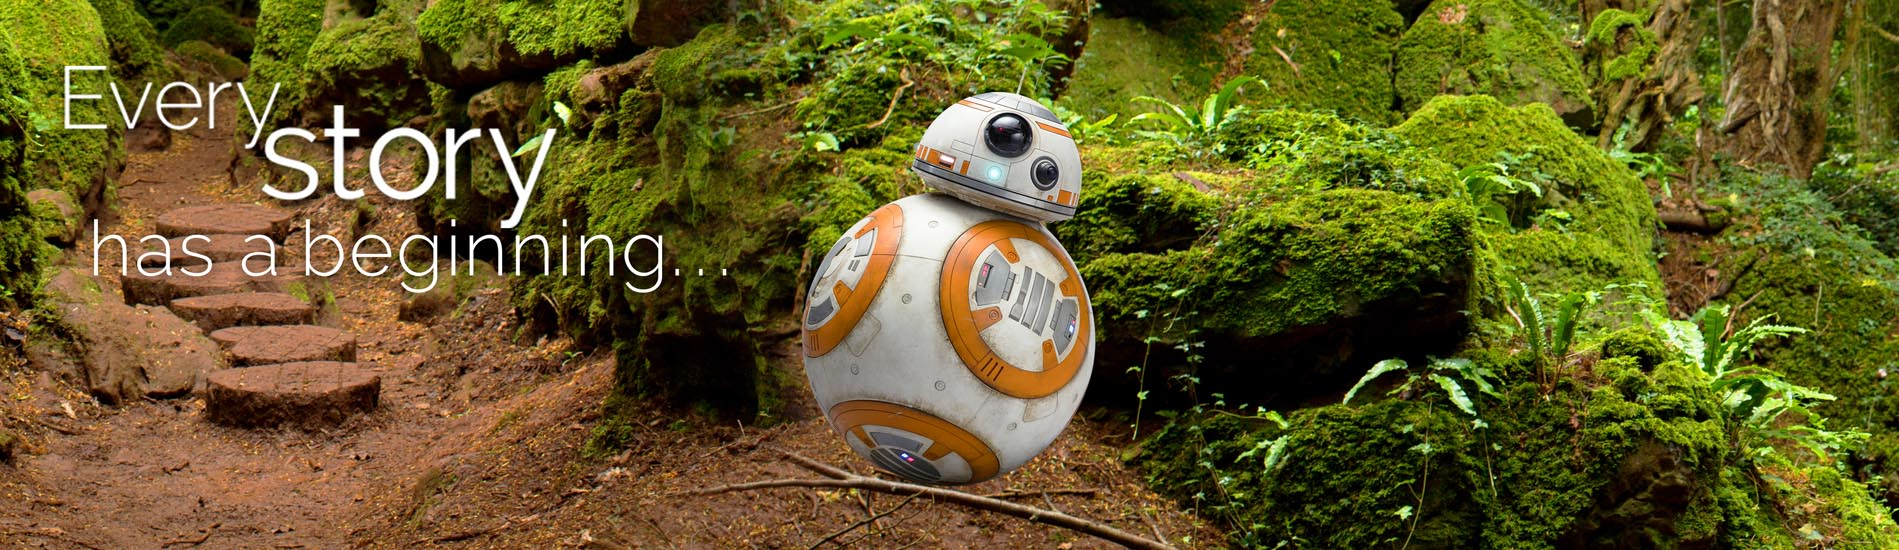 Every Story has a Beginning Lucasfilms BB-8